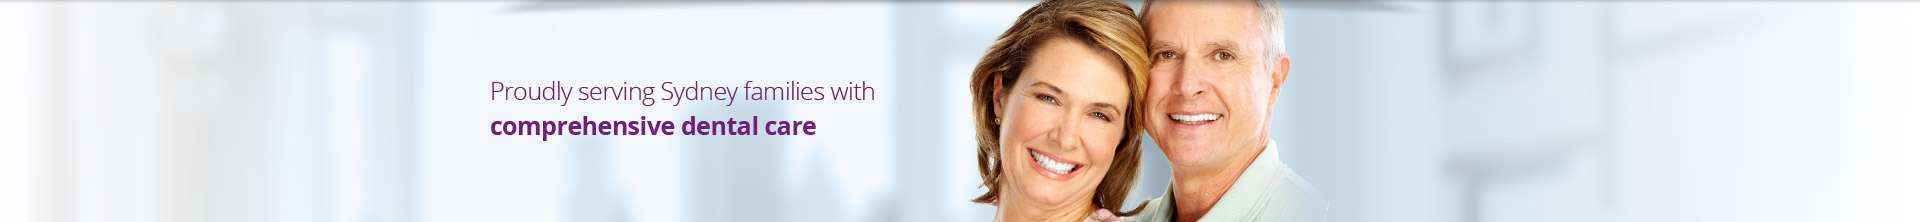 Dental Implants | Gentle Dental Care 7 Days